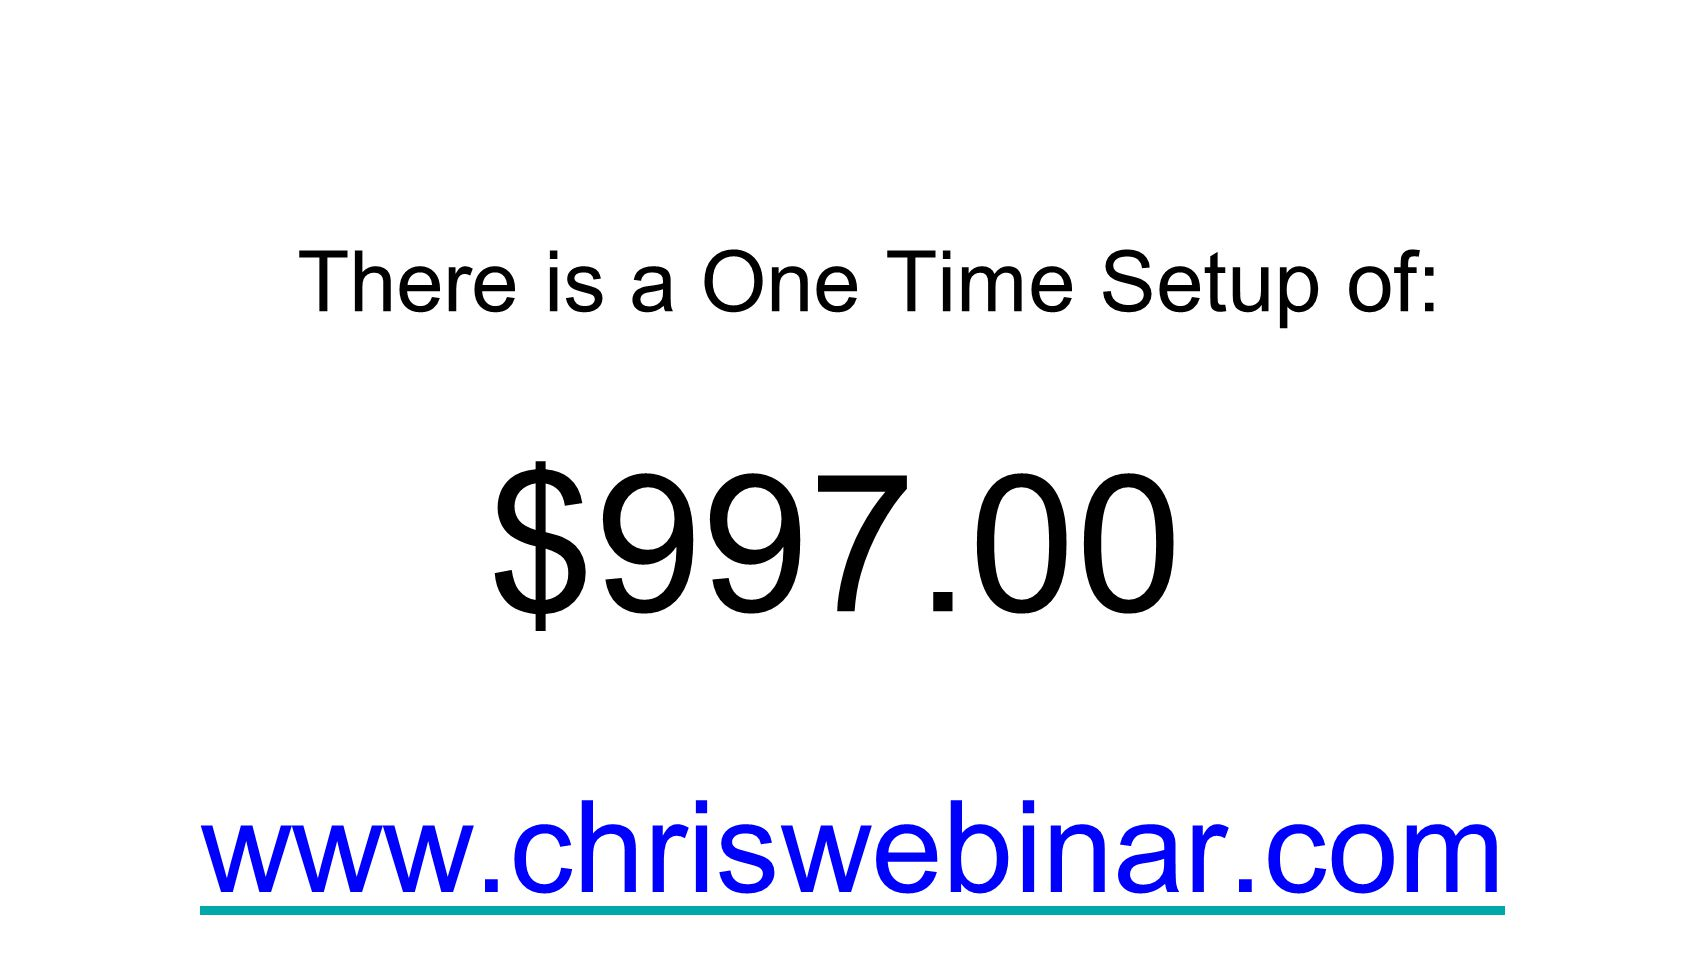 There is a One Time Setup of: $997.00 www.chriswebinar.com